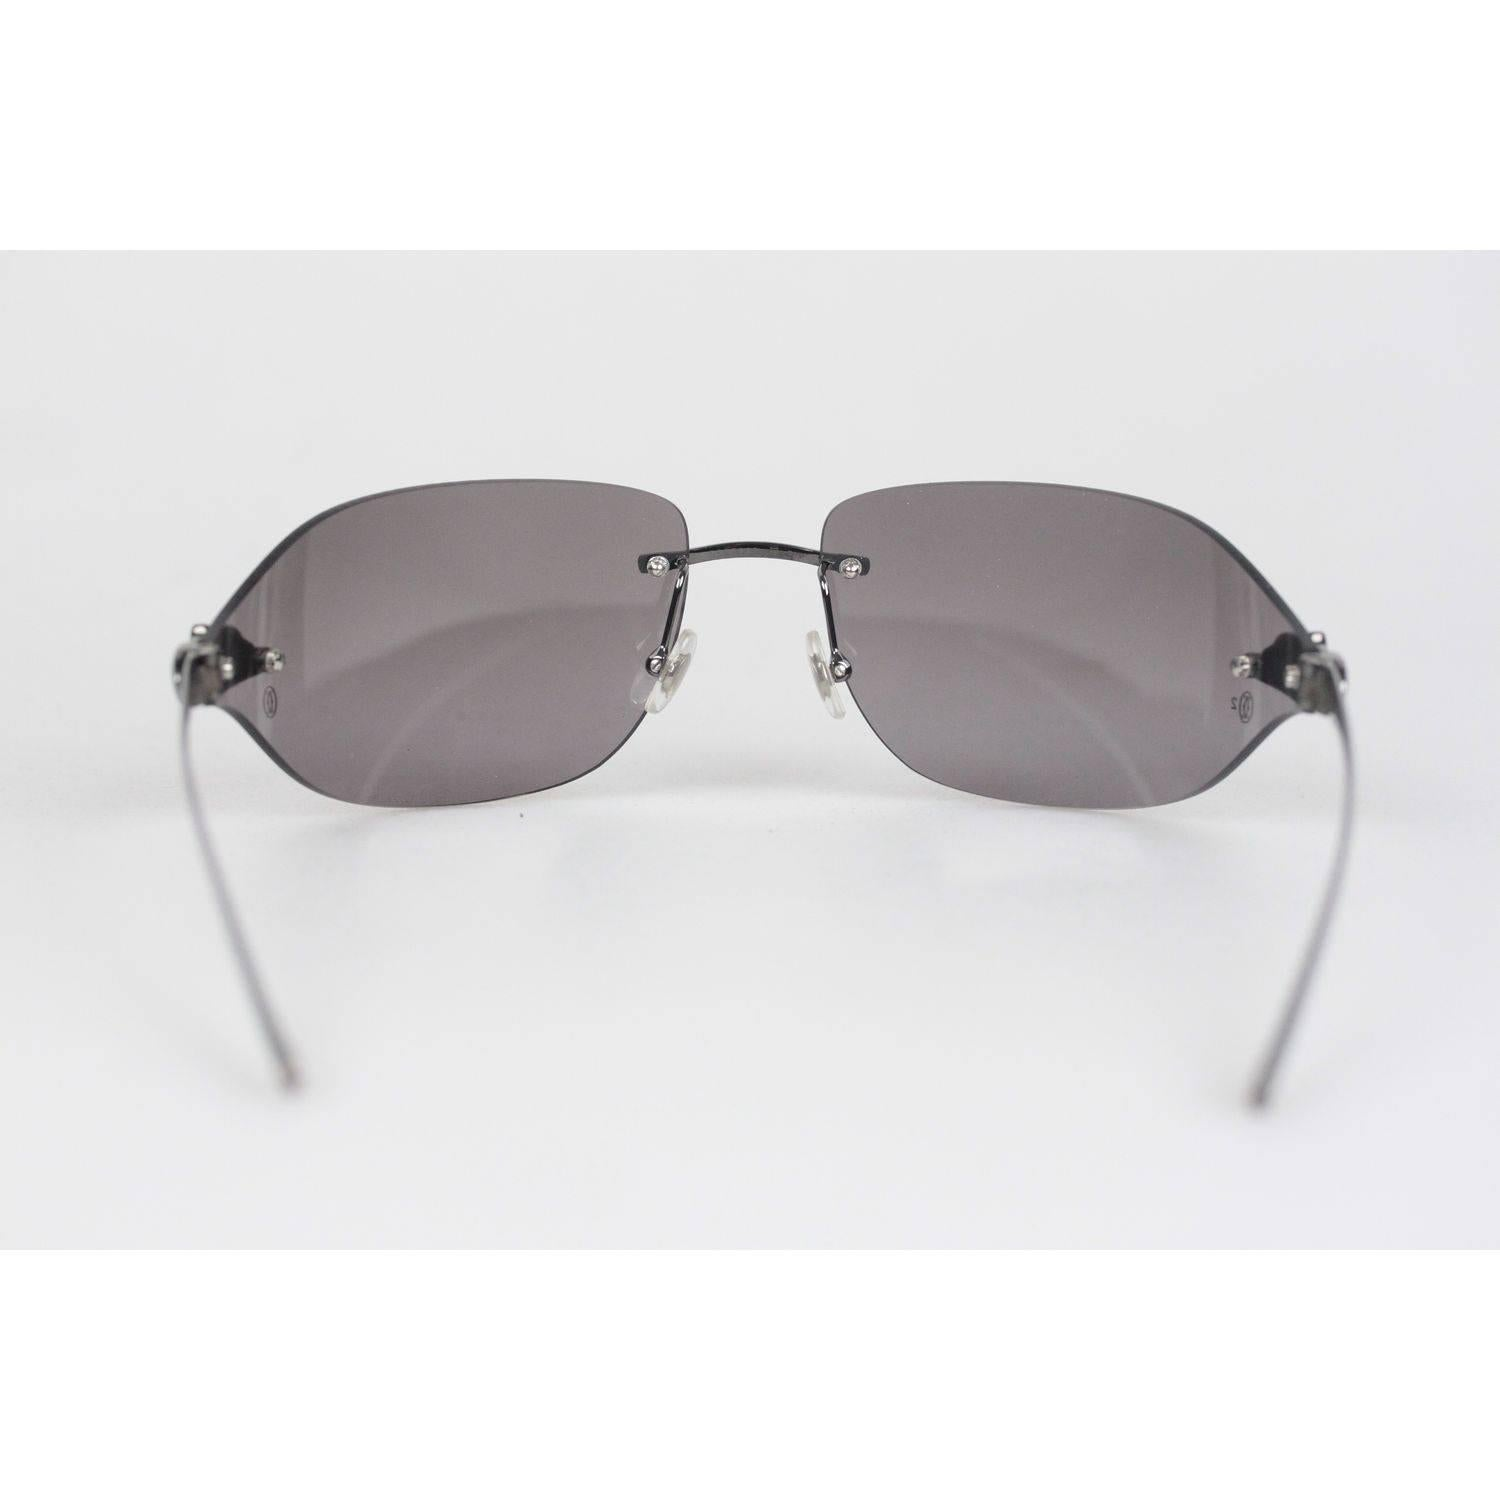 f3b212fca976 Cartier Paris Panthere Rimless Sunglasses T8200882 110mm For Sale at 1stdibs